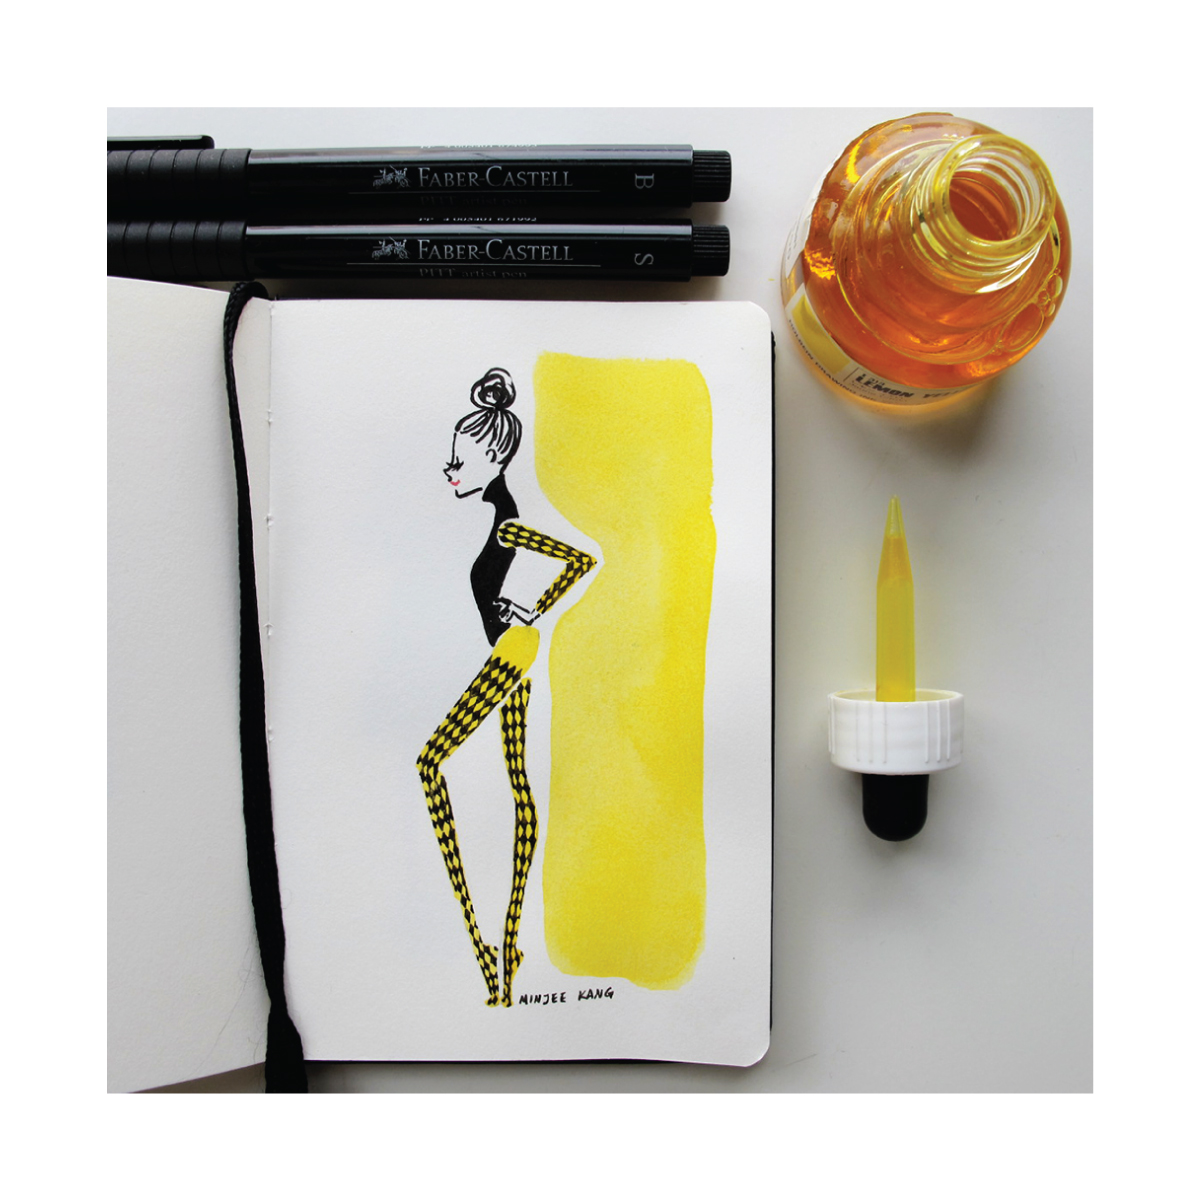 Fashion illustration of model with yellow patterned tights